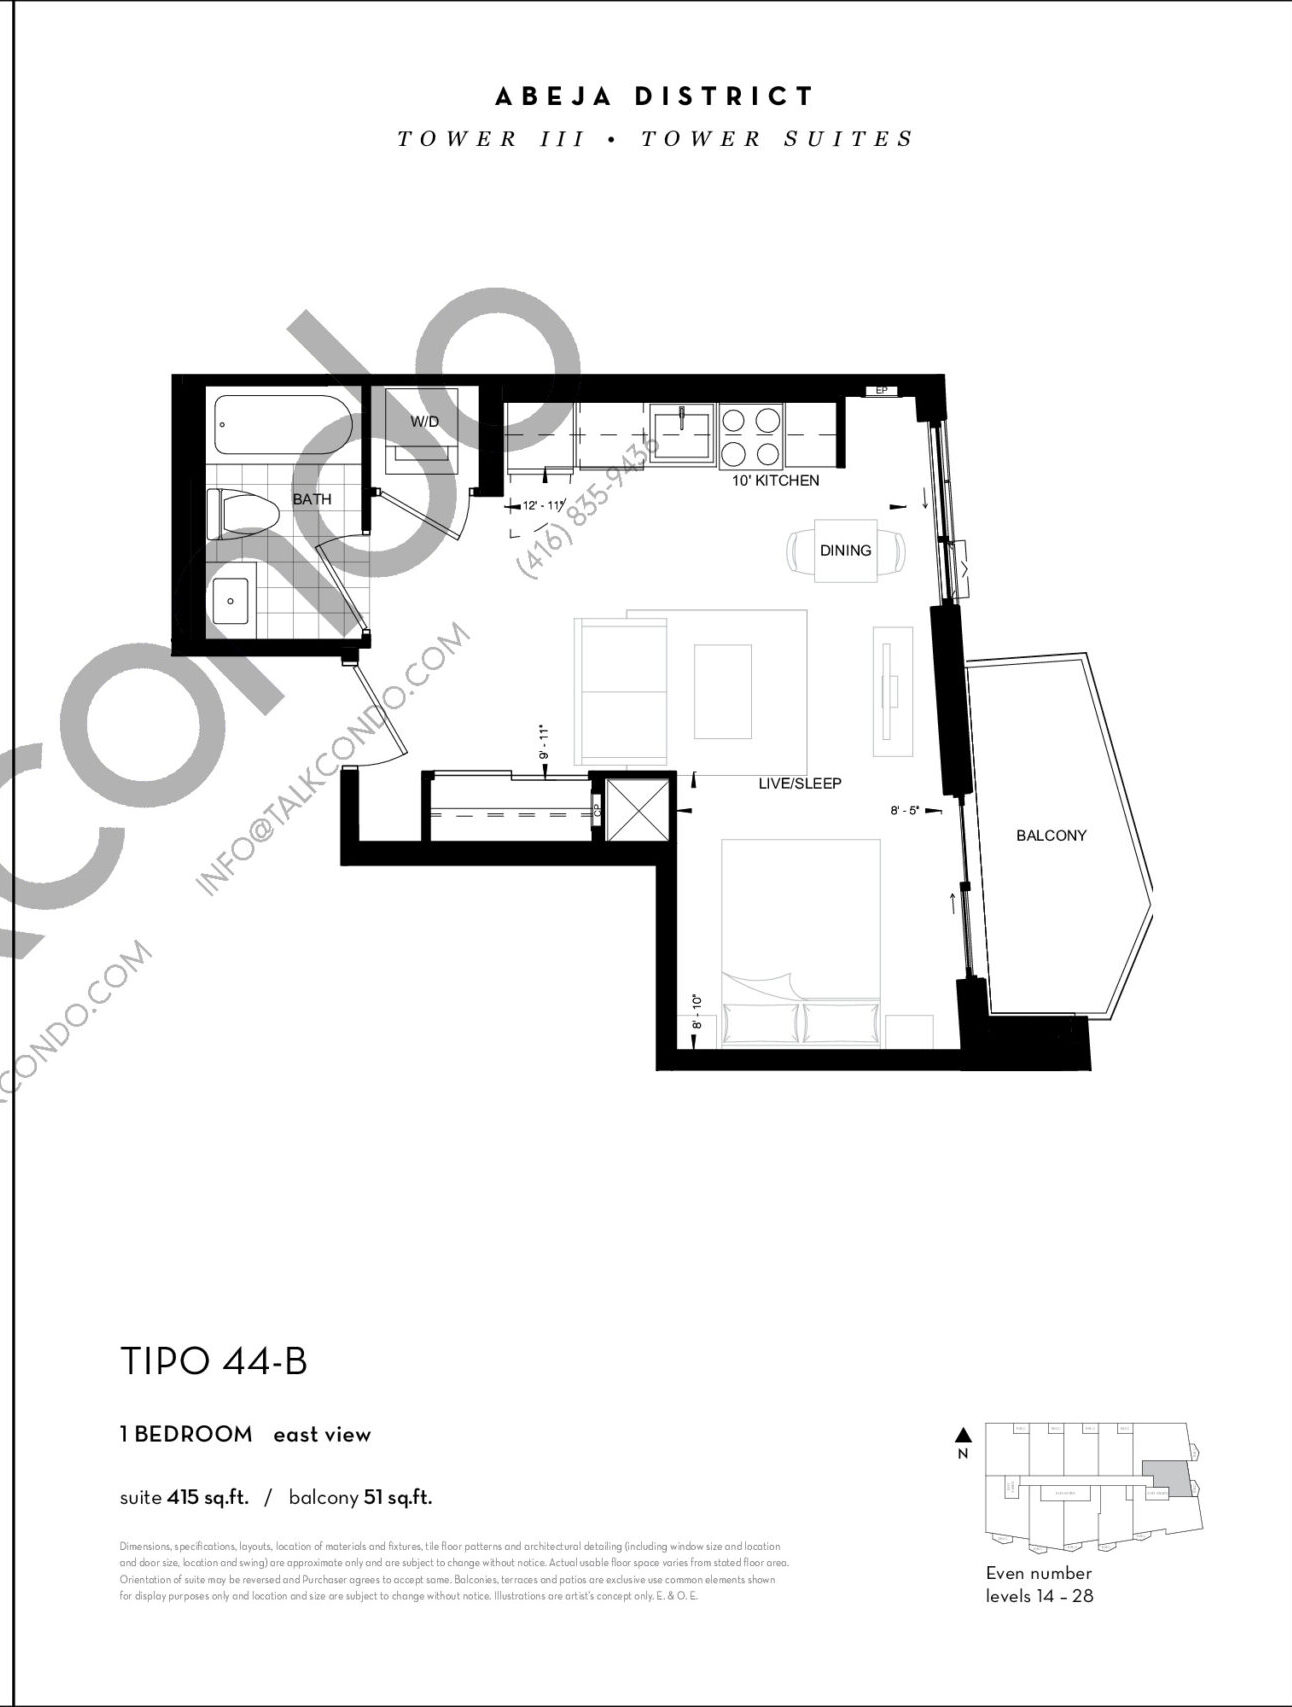 TIPO 44-B Floor Plan at Abeja District Condos Tower 3 - 415 sq.ft